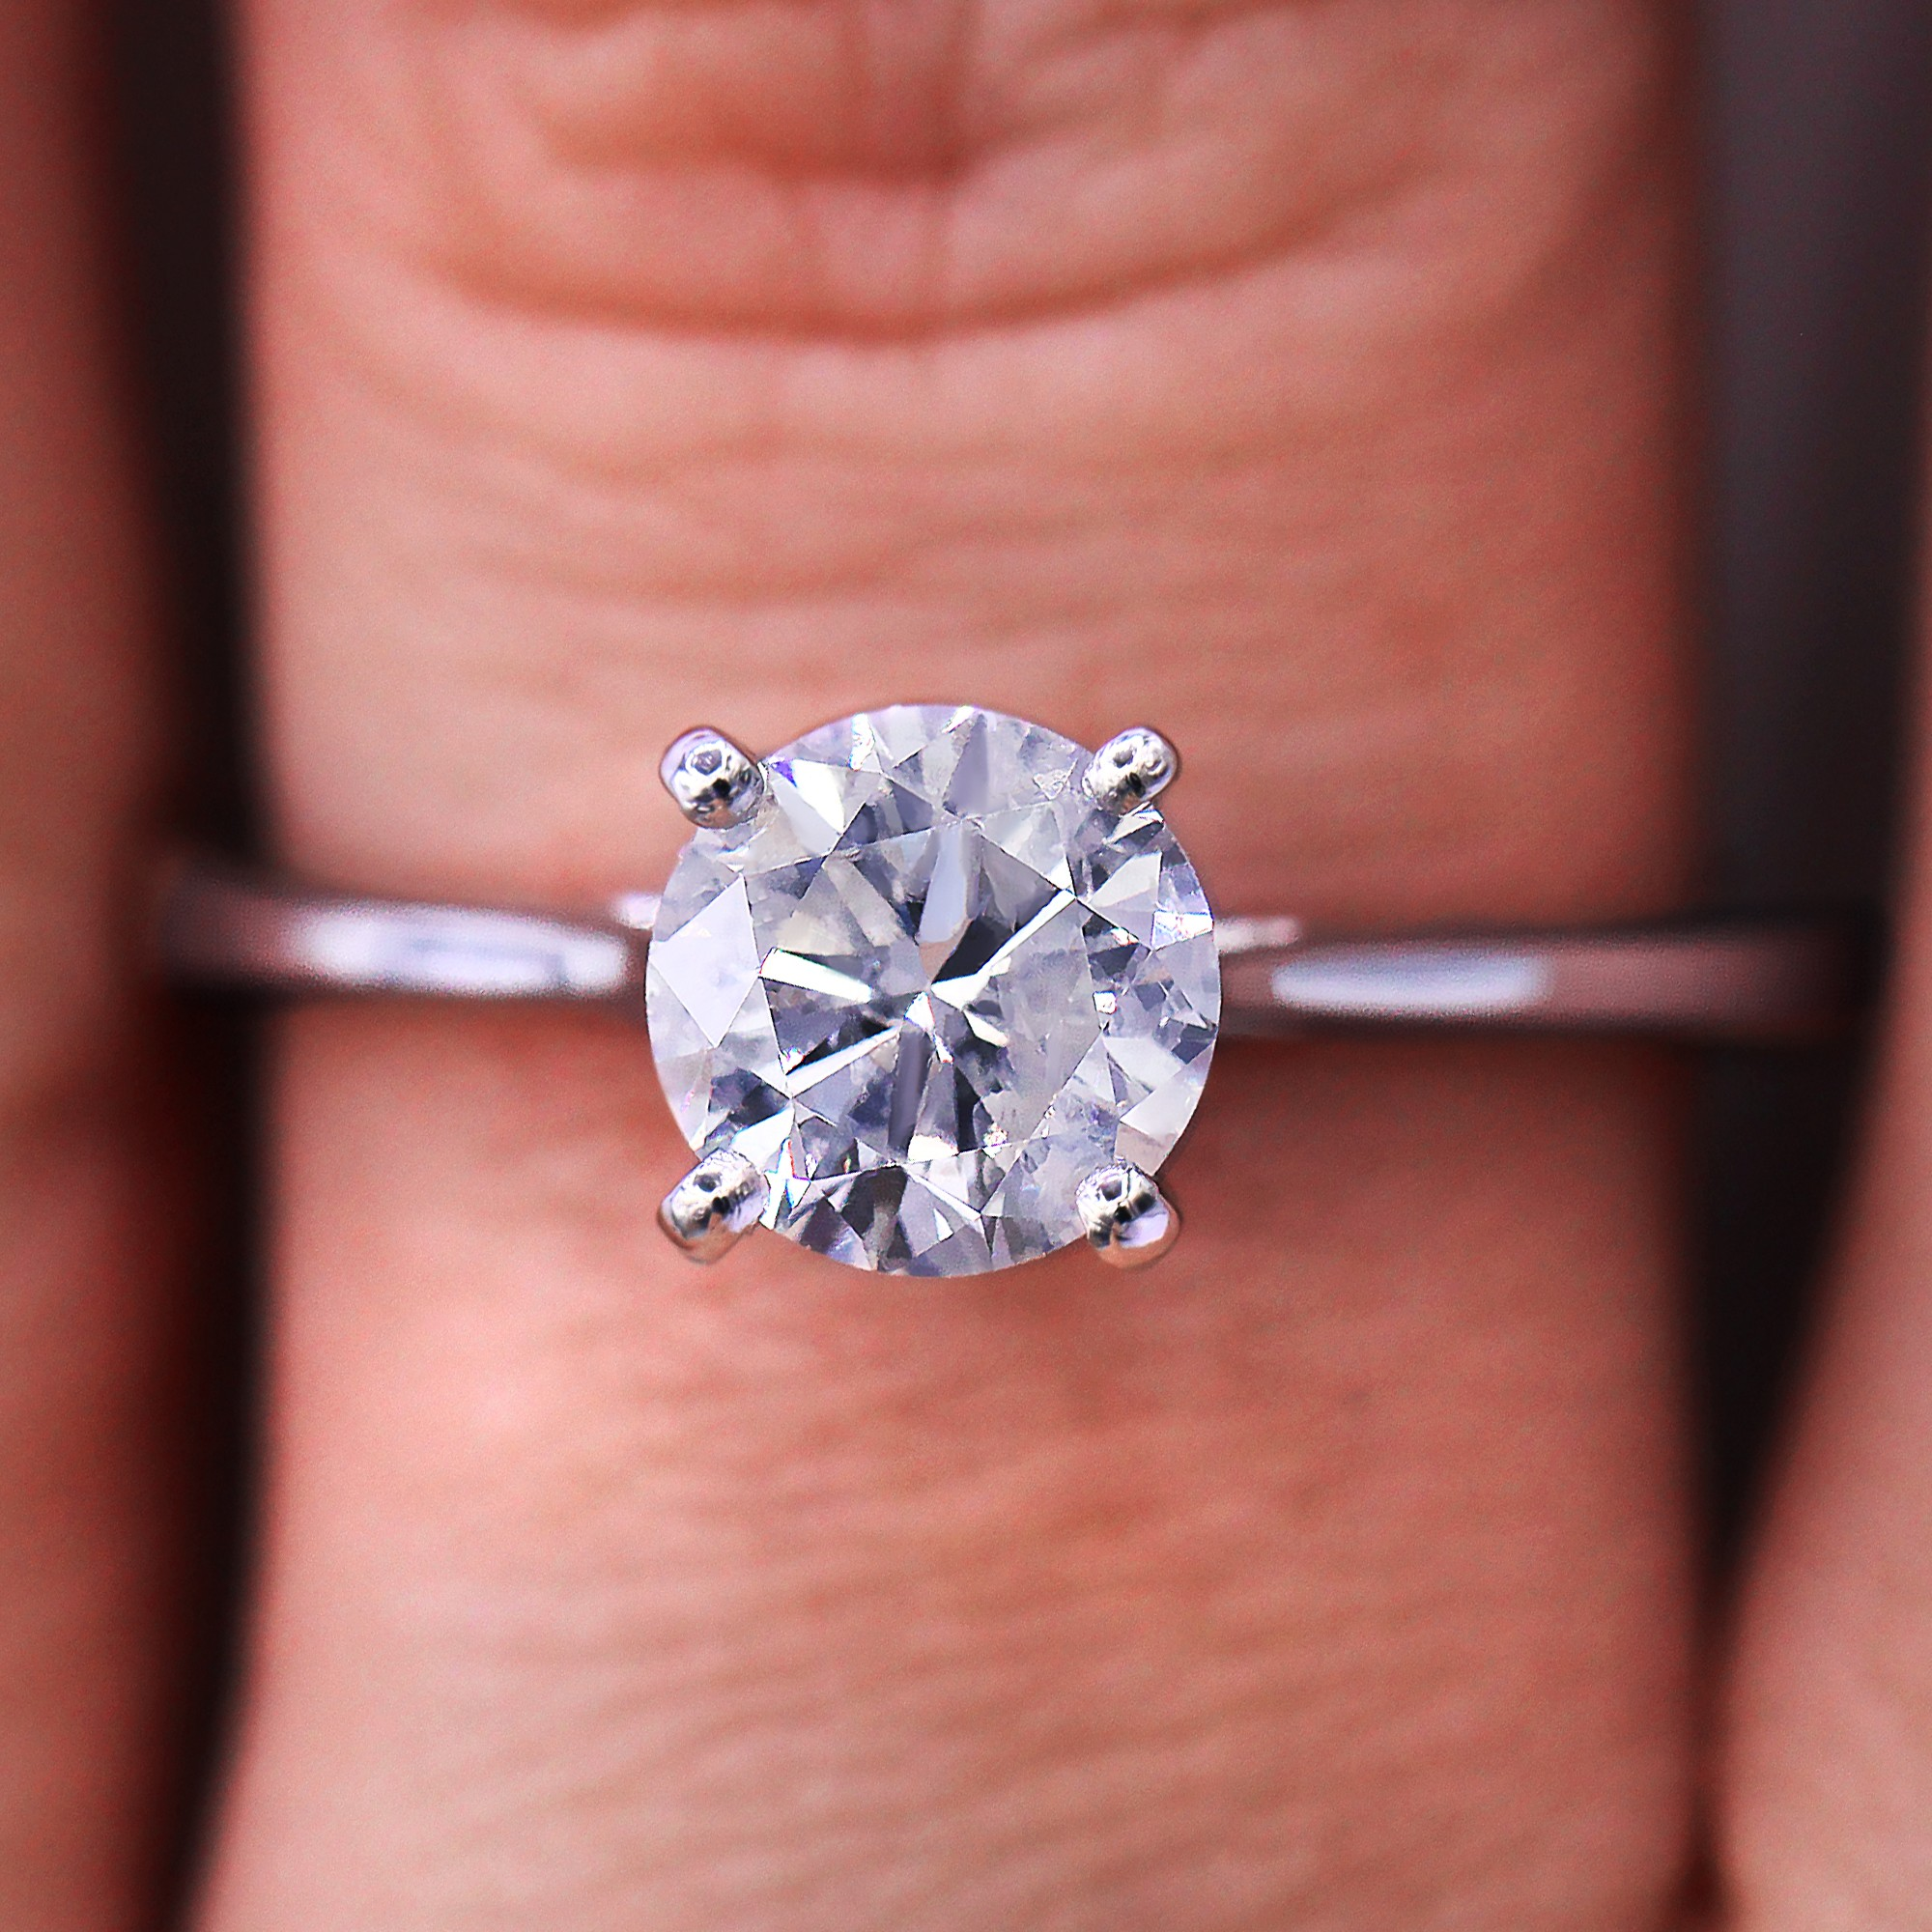 Classic and Petite 0.95carat solitaire diamond ring